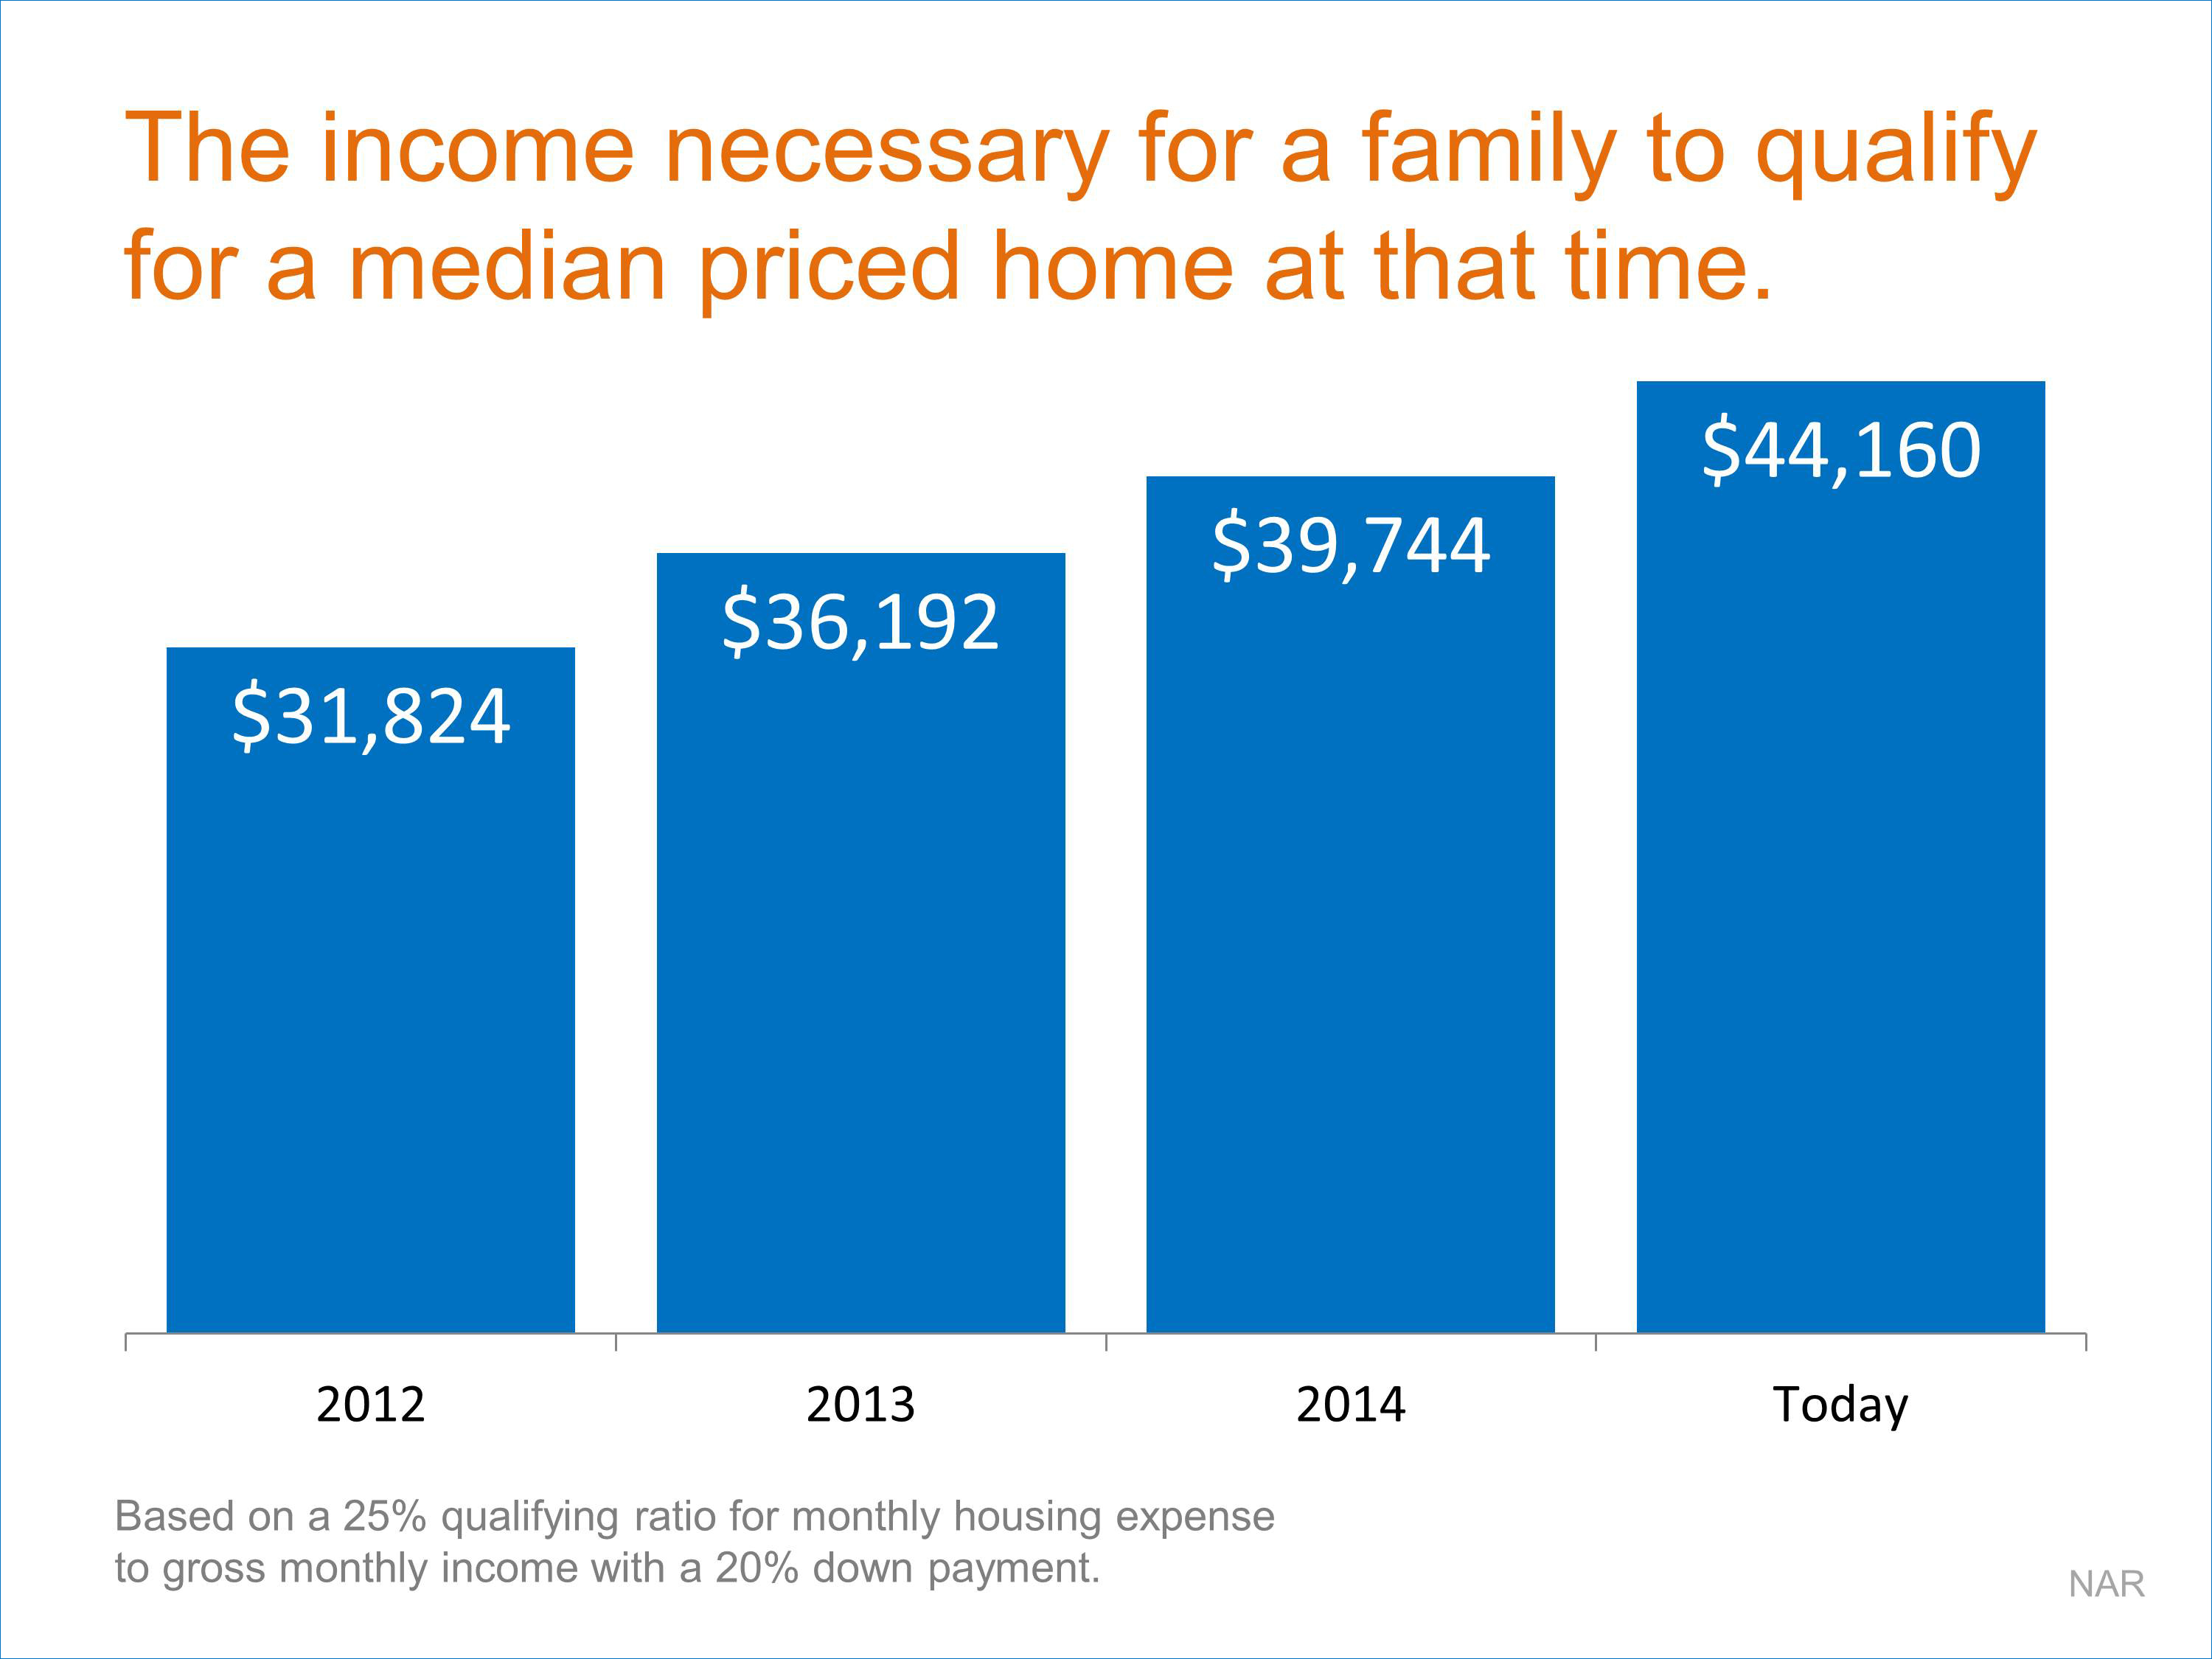 Median Income to qualify for a median priced home